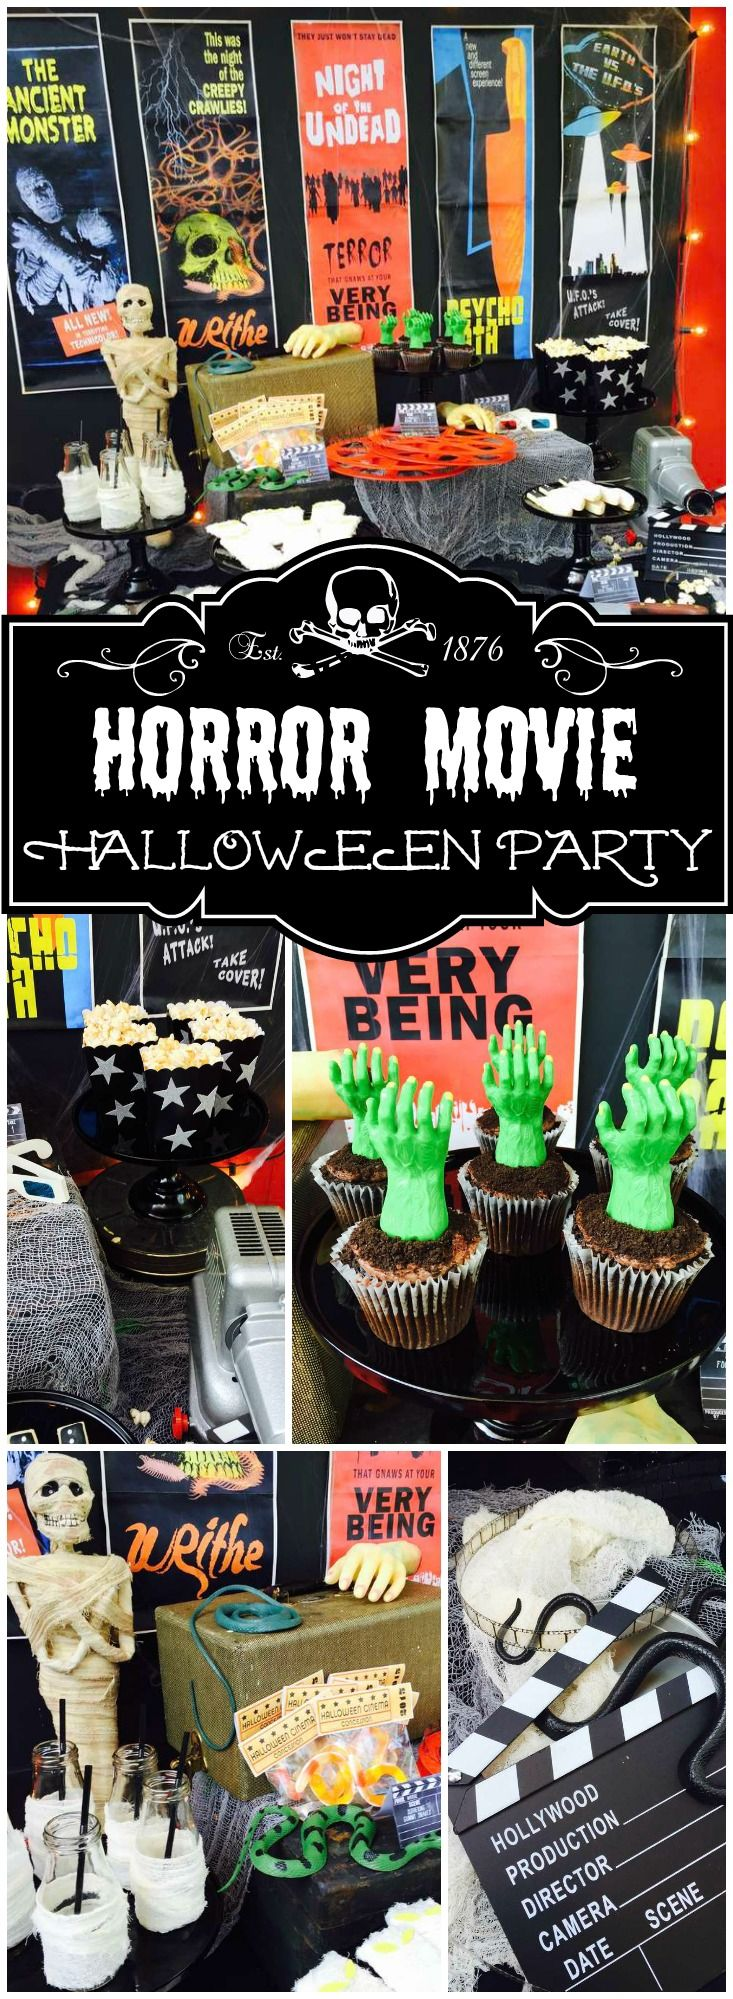 How awesome is this vintage horror movie Halloween party